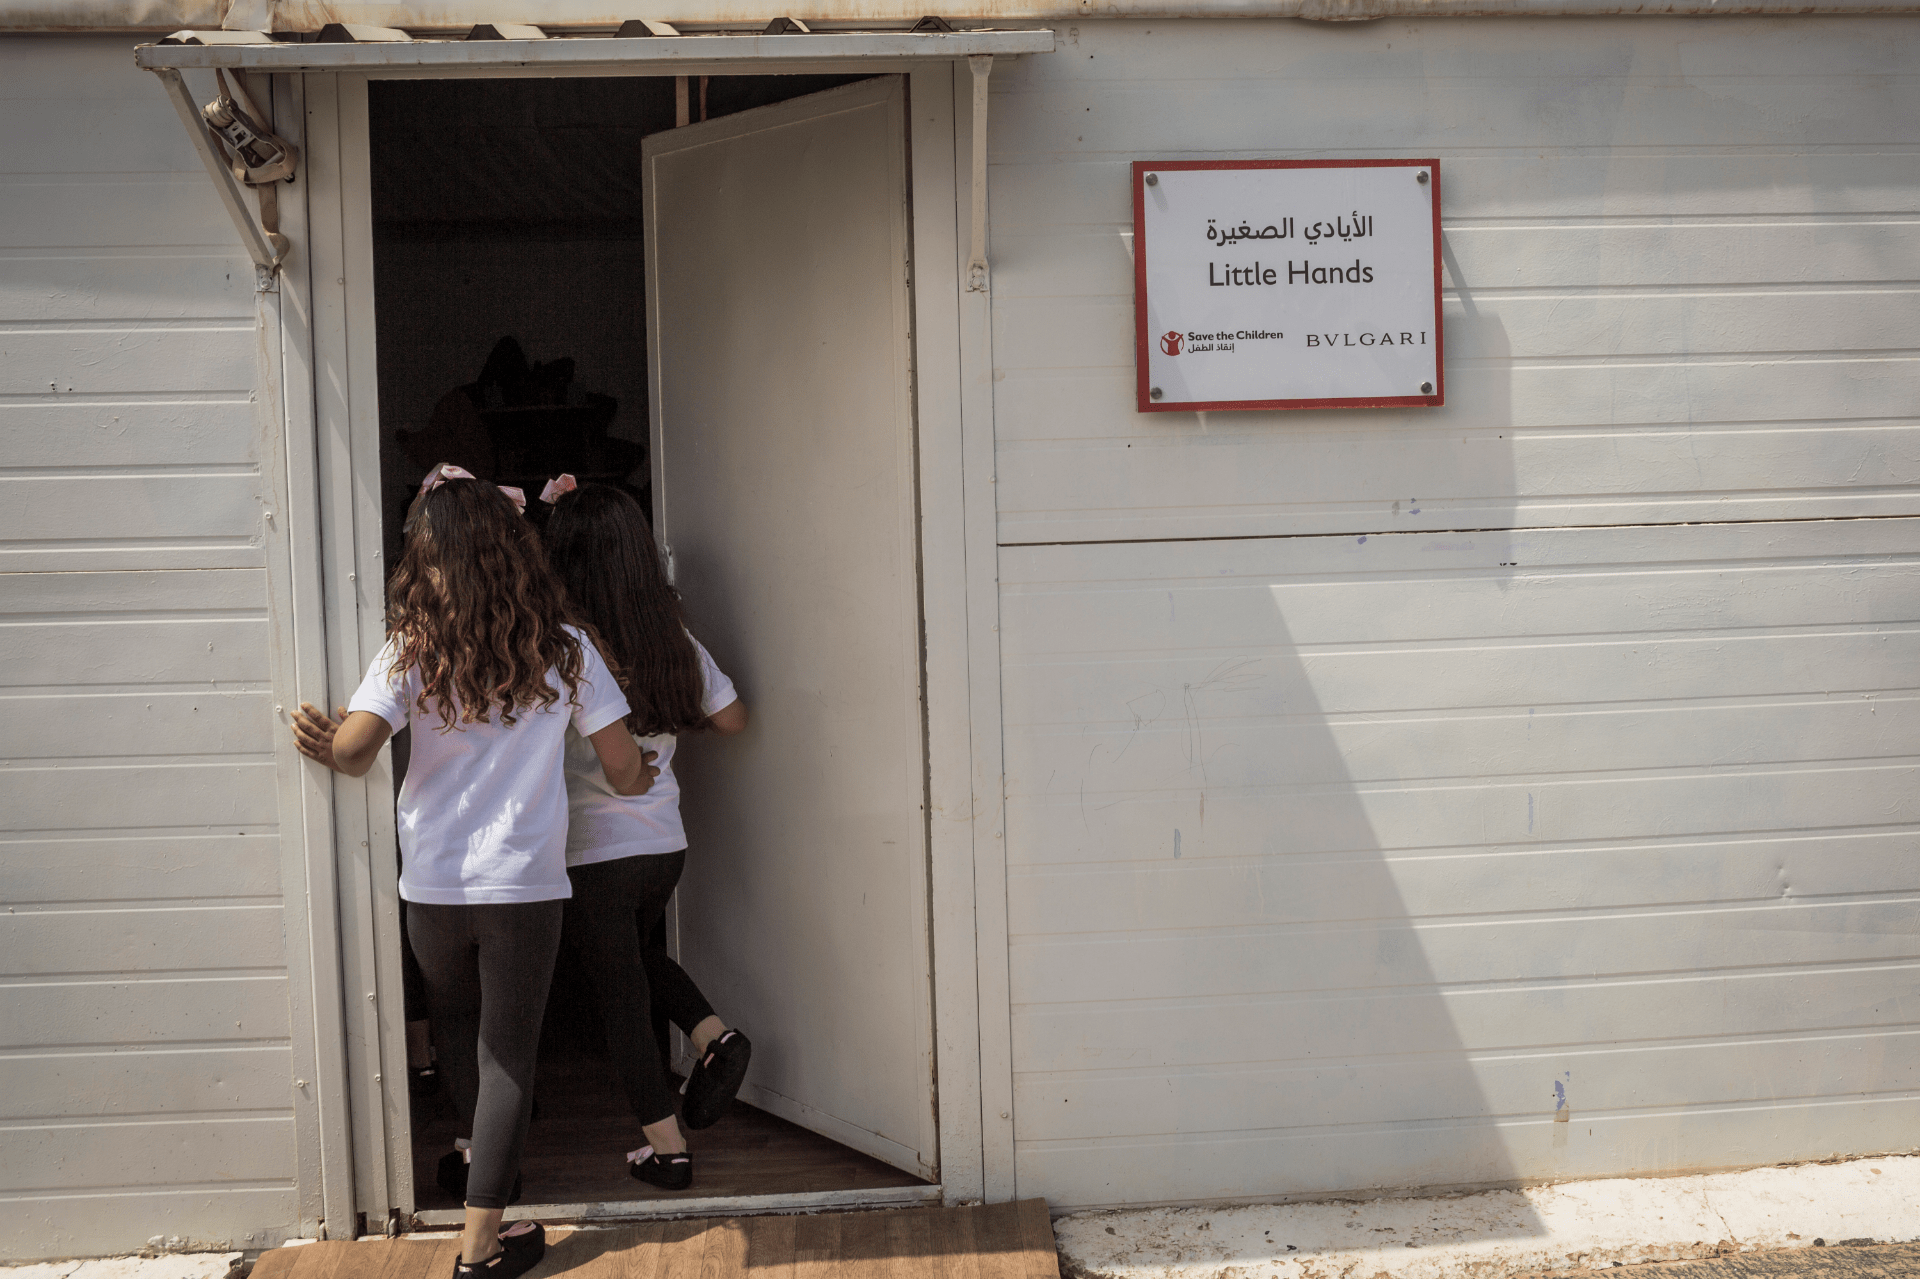 A pre-school built by Bulgari and Save The Children in Za'atari (Photo: Bulgari)